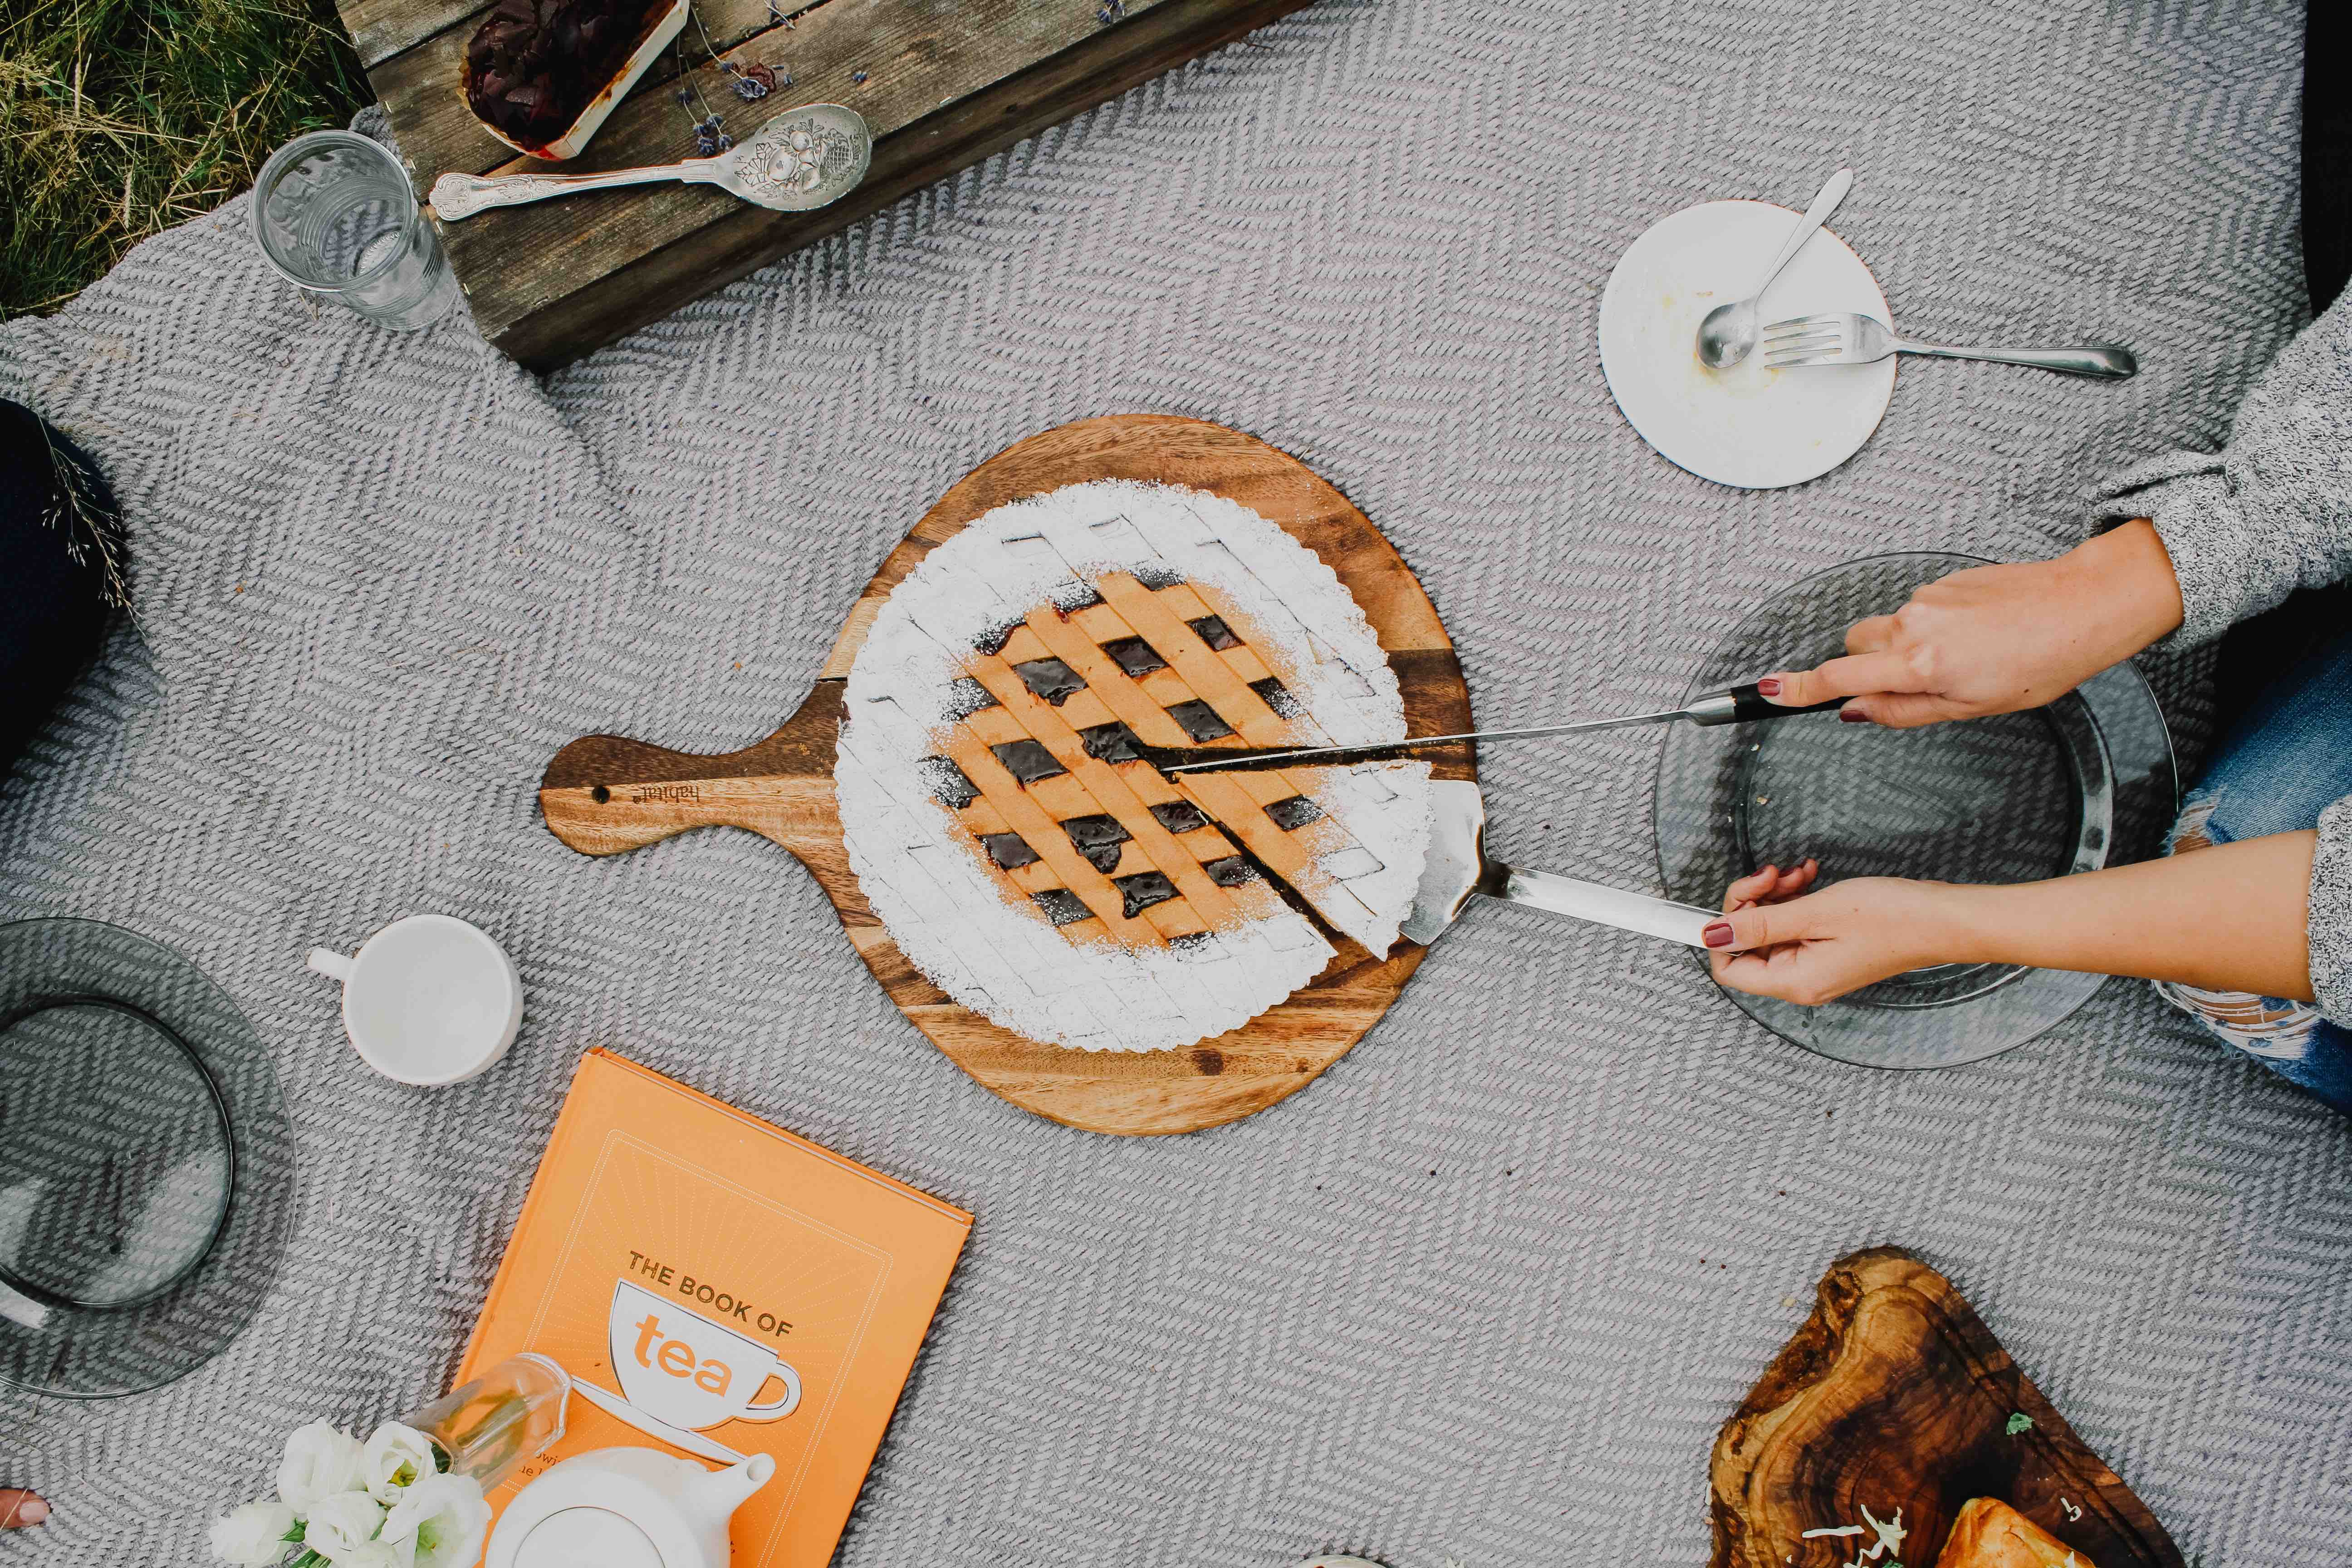 10 Picture Perfect Picnic Ideas You'll Want to Put on Instagram